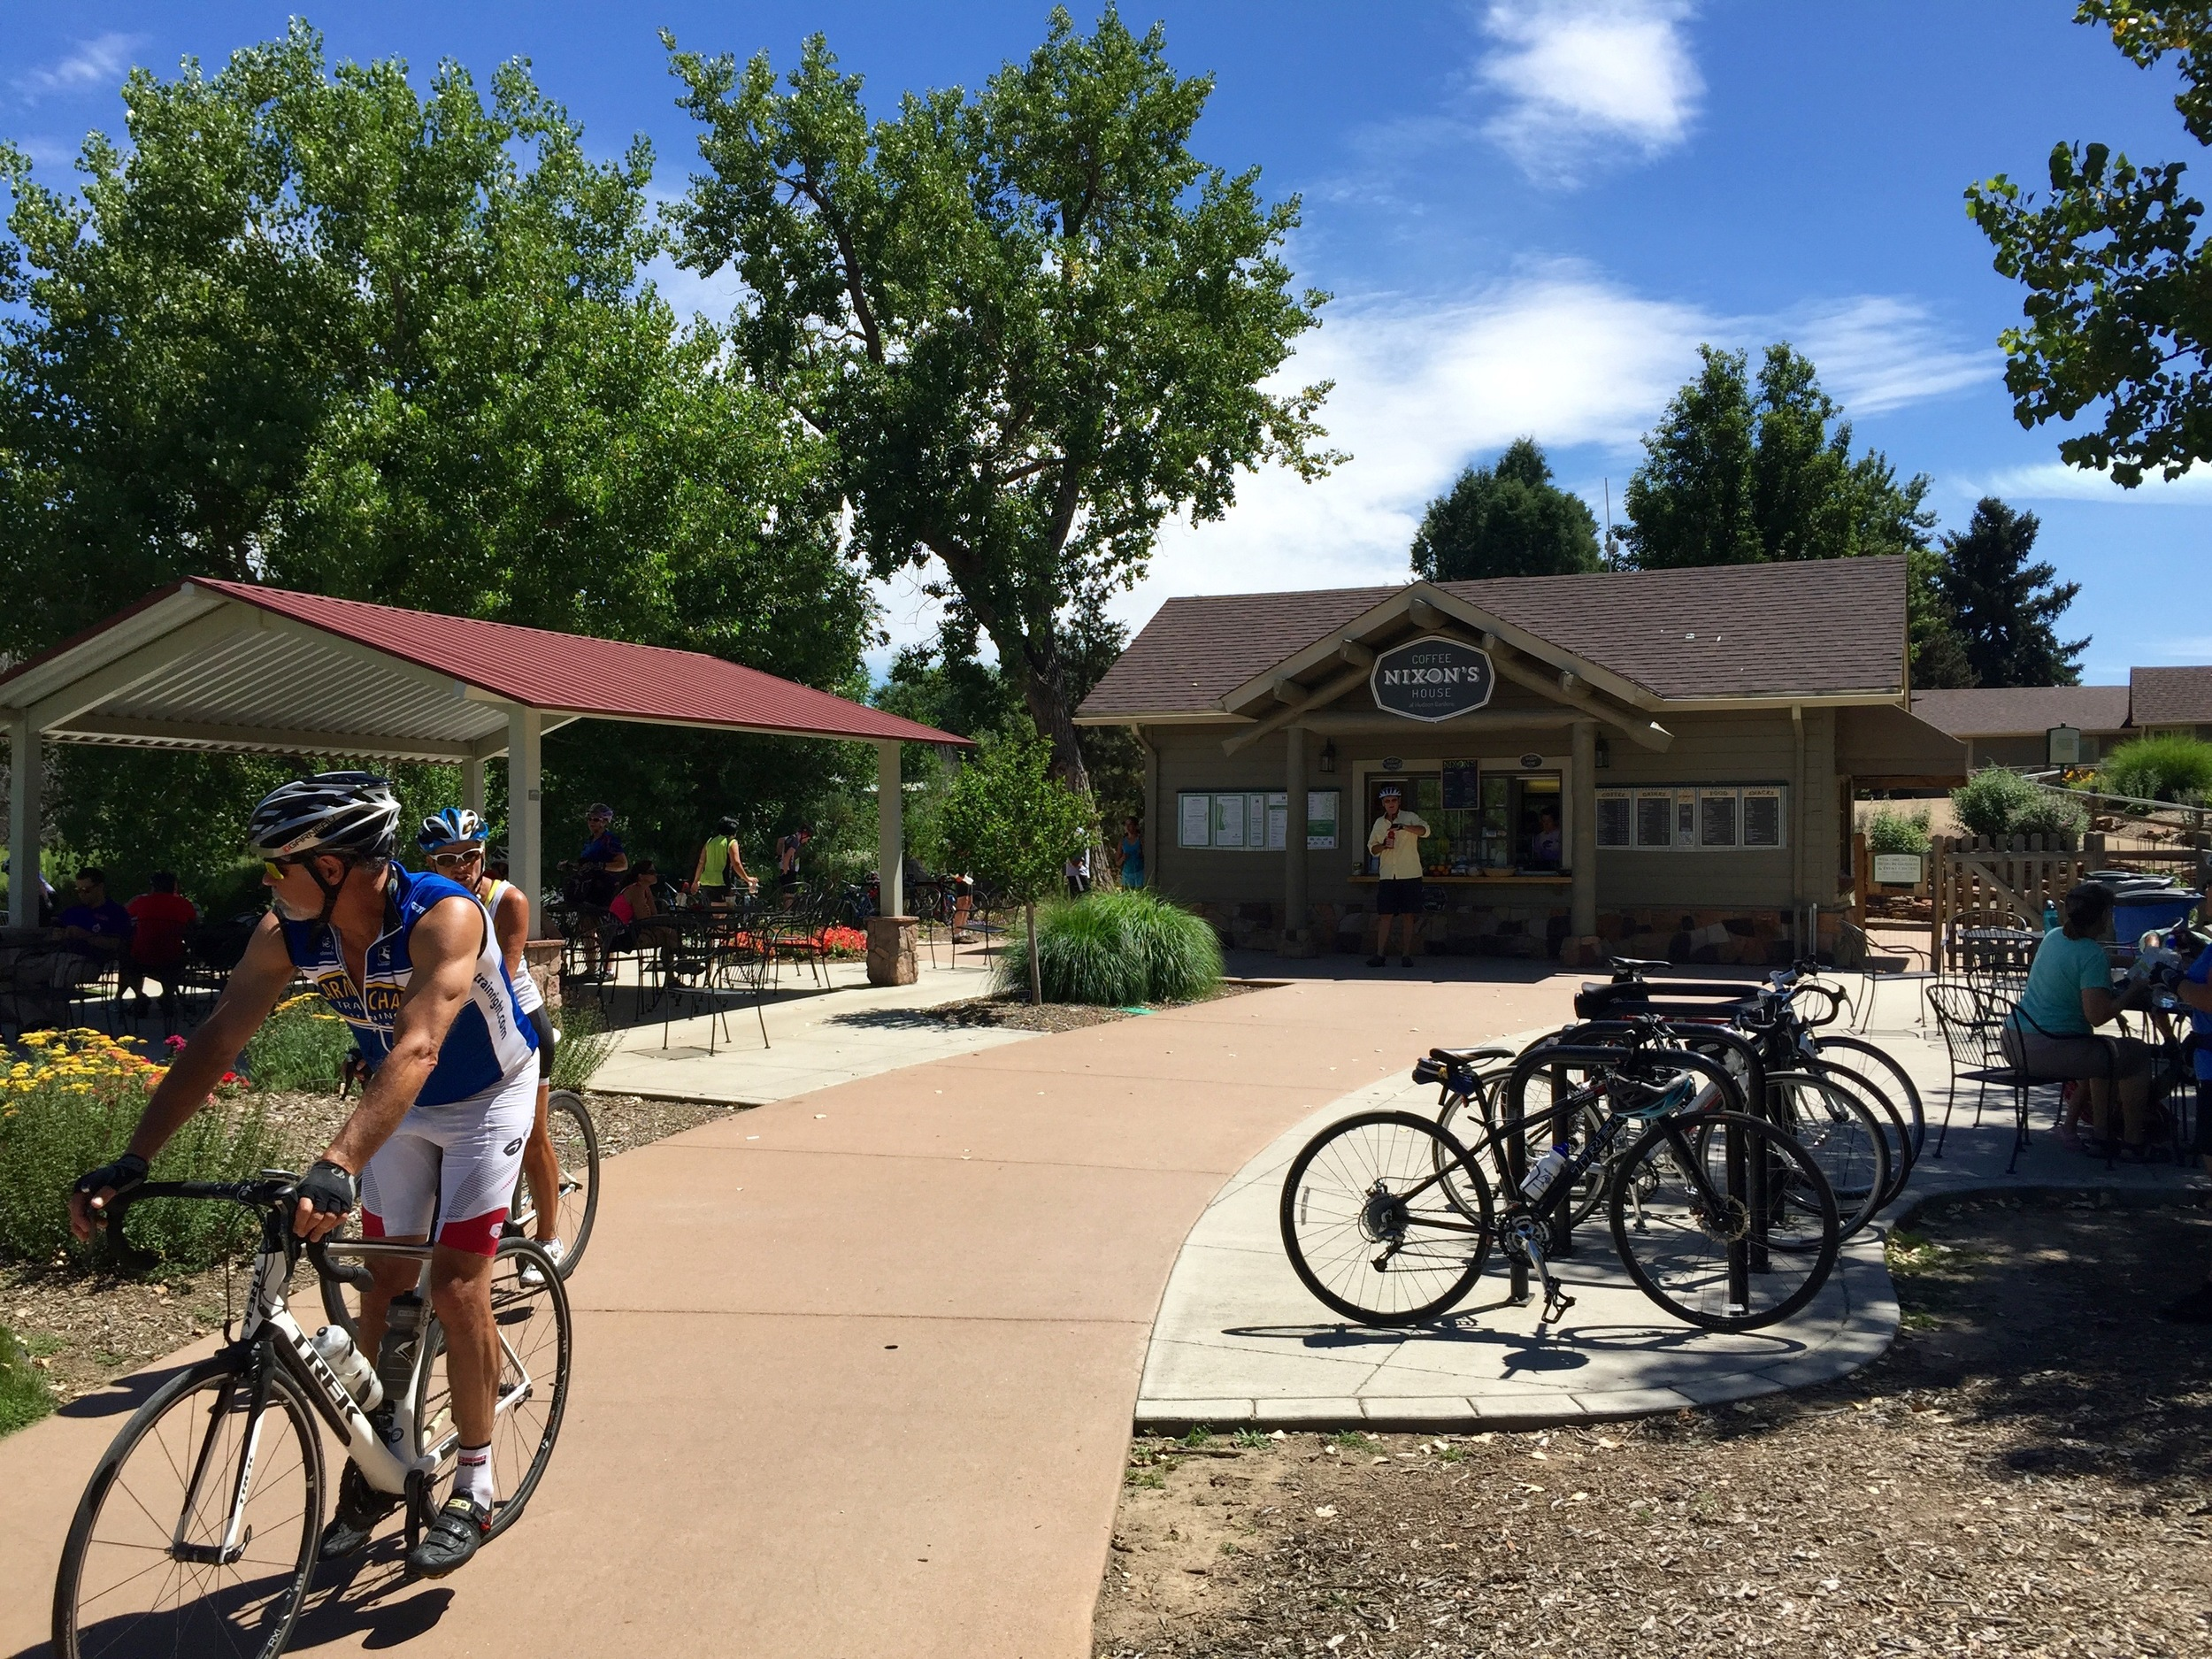 Nixon's Coffe House is a trailside hub for the folks visiting Mary Carter Greenway and Hudson Gardens